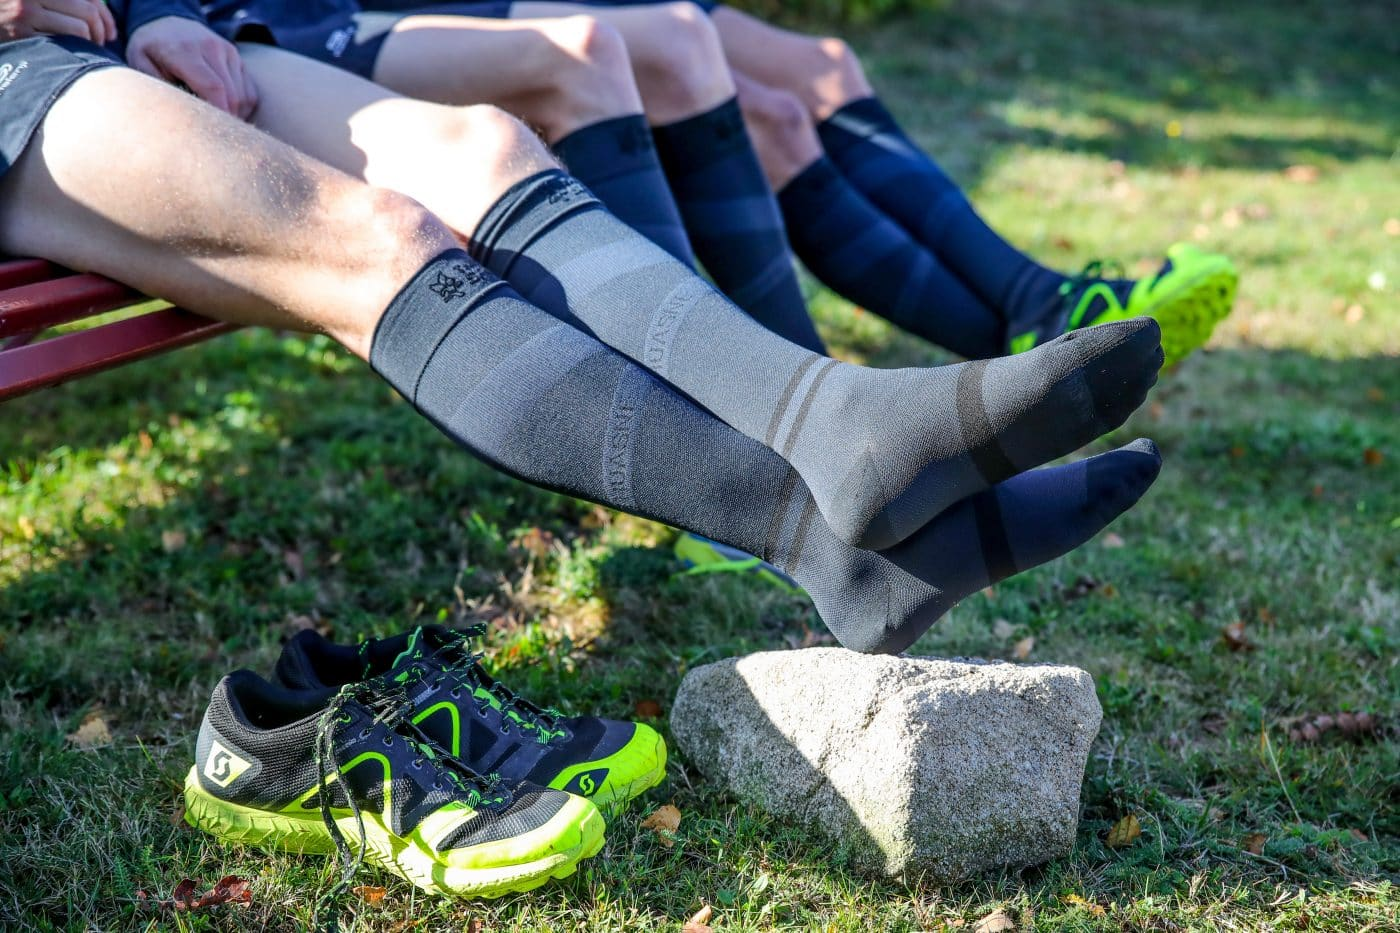 thuasne - chaussettes recup- 3